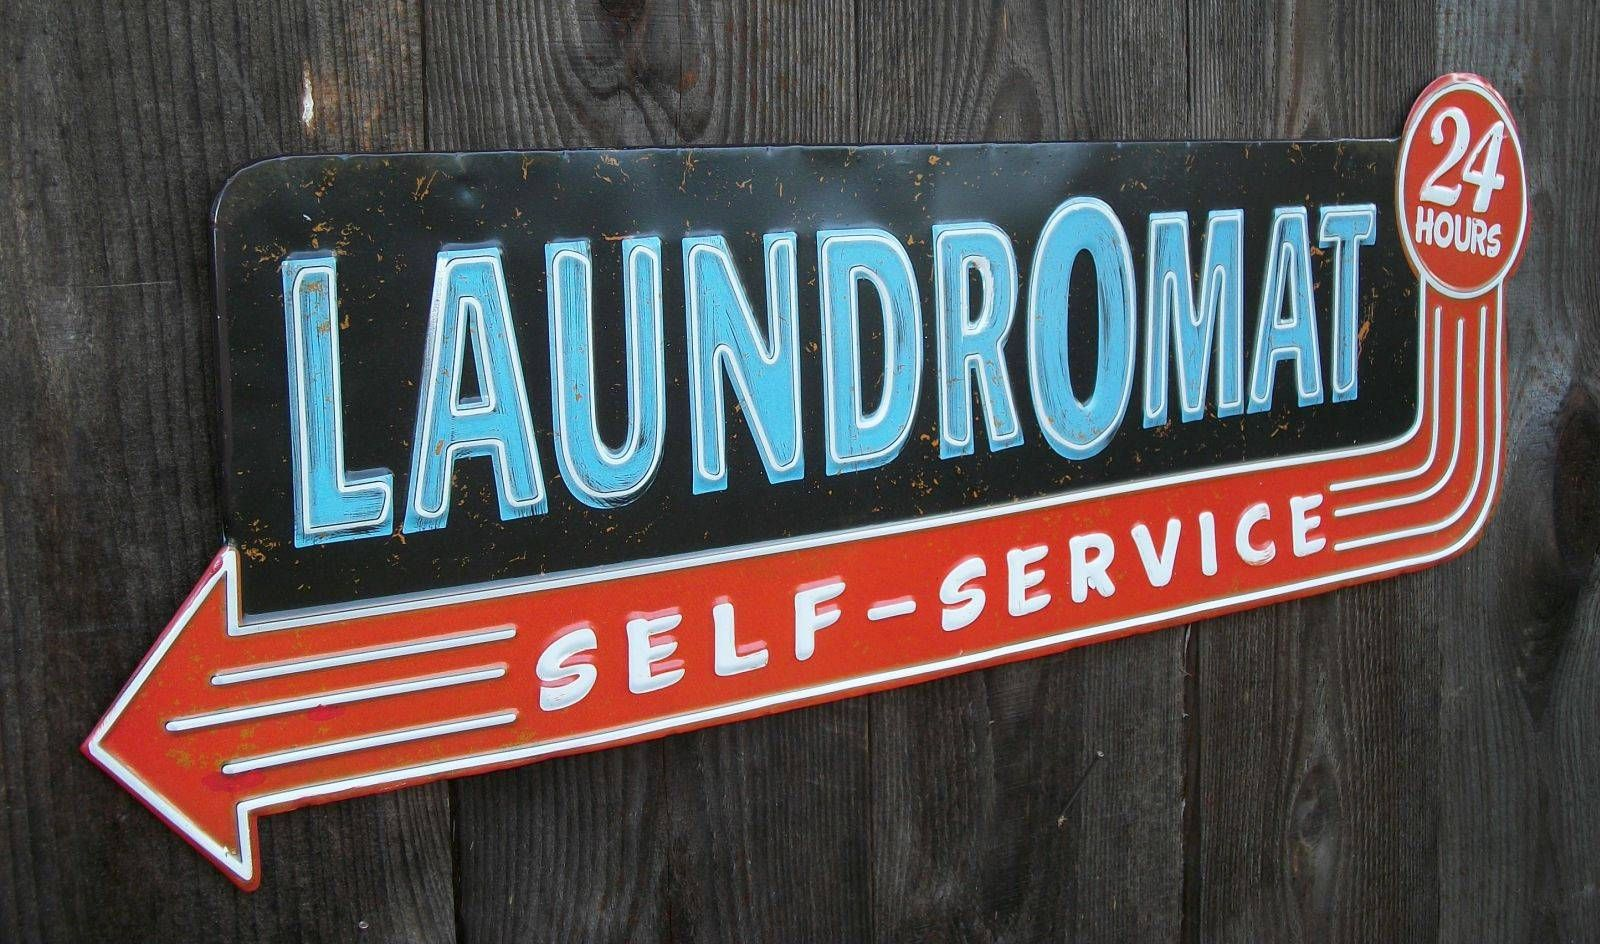 Pin By Kat On Lavanderia Laundromat Signs Laundry Service